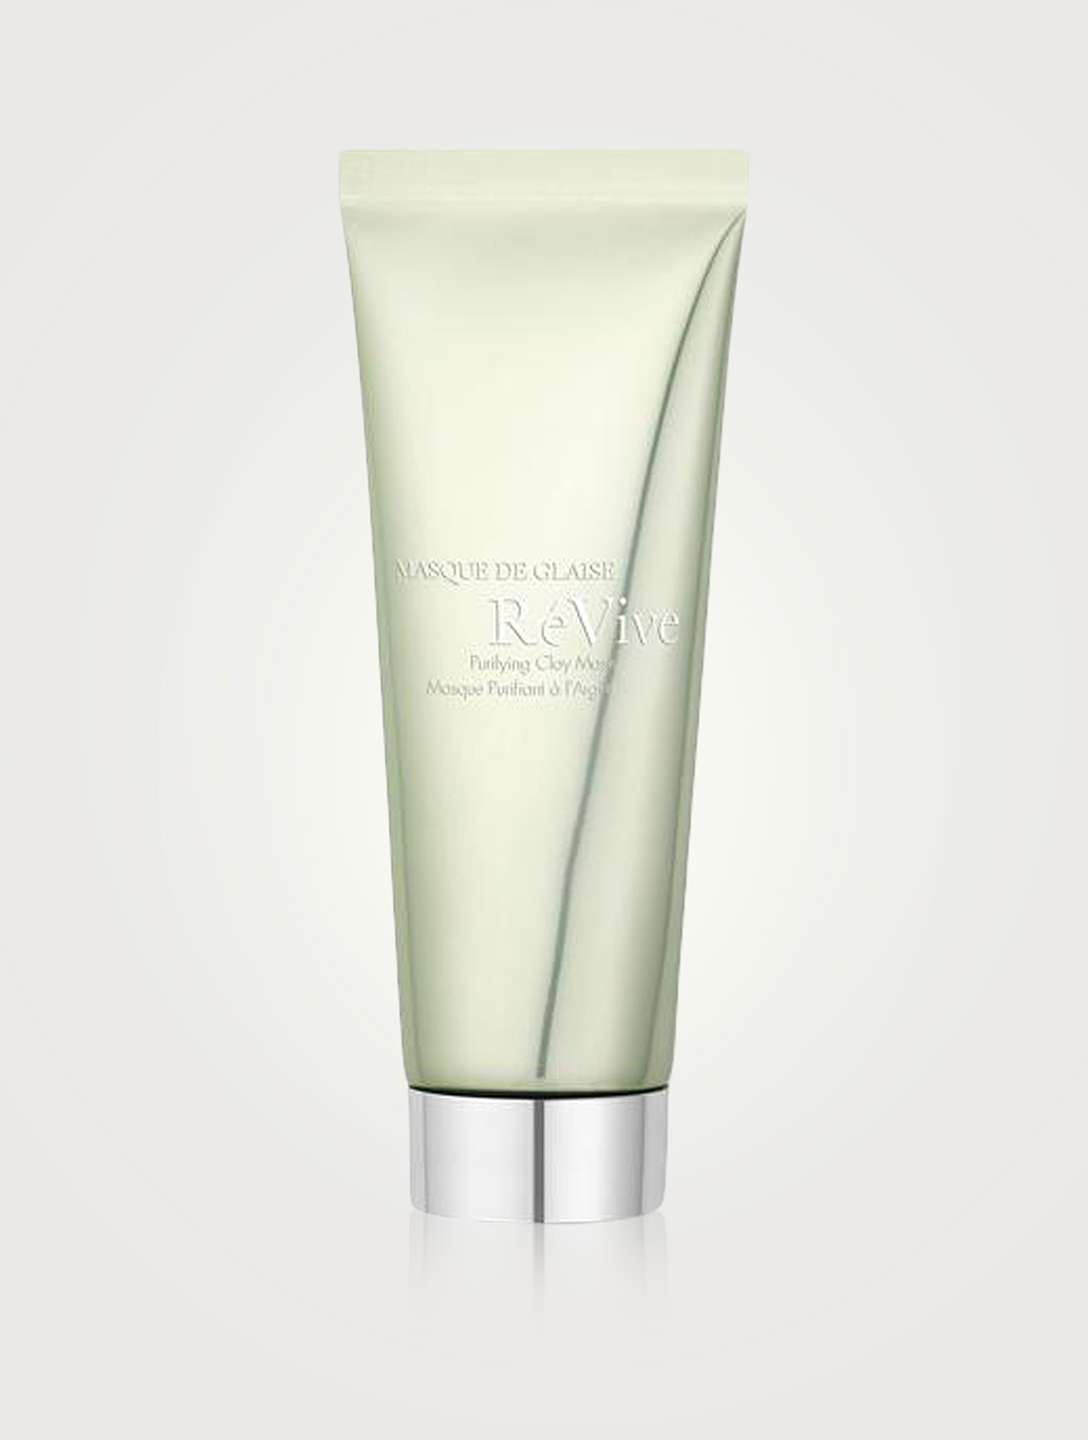 RÉVIVE Masque de Glaise Purifying Clay Mask Beauty